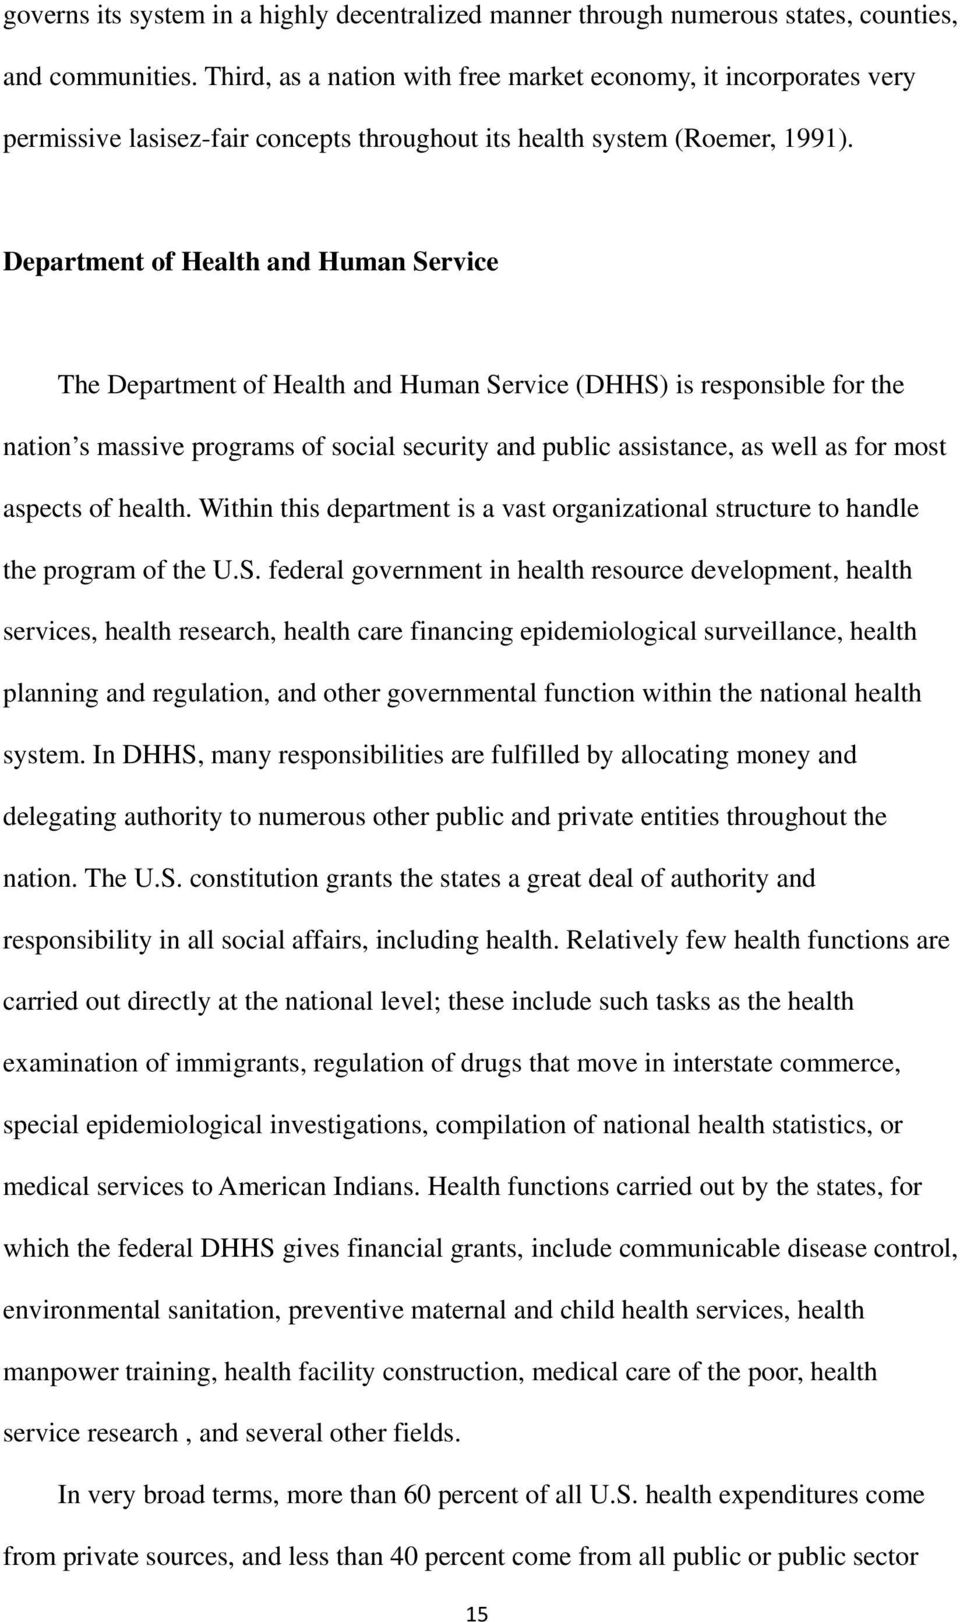 Department of Health and Human Service The Department of Health and Human Service (DHHS) is responsible for the nation s massive programs of social security and public assistance, as well as for most